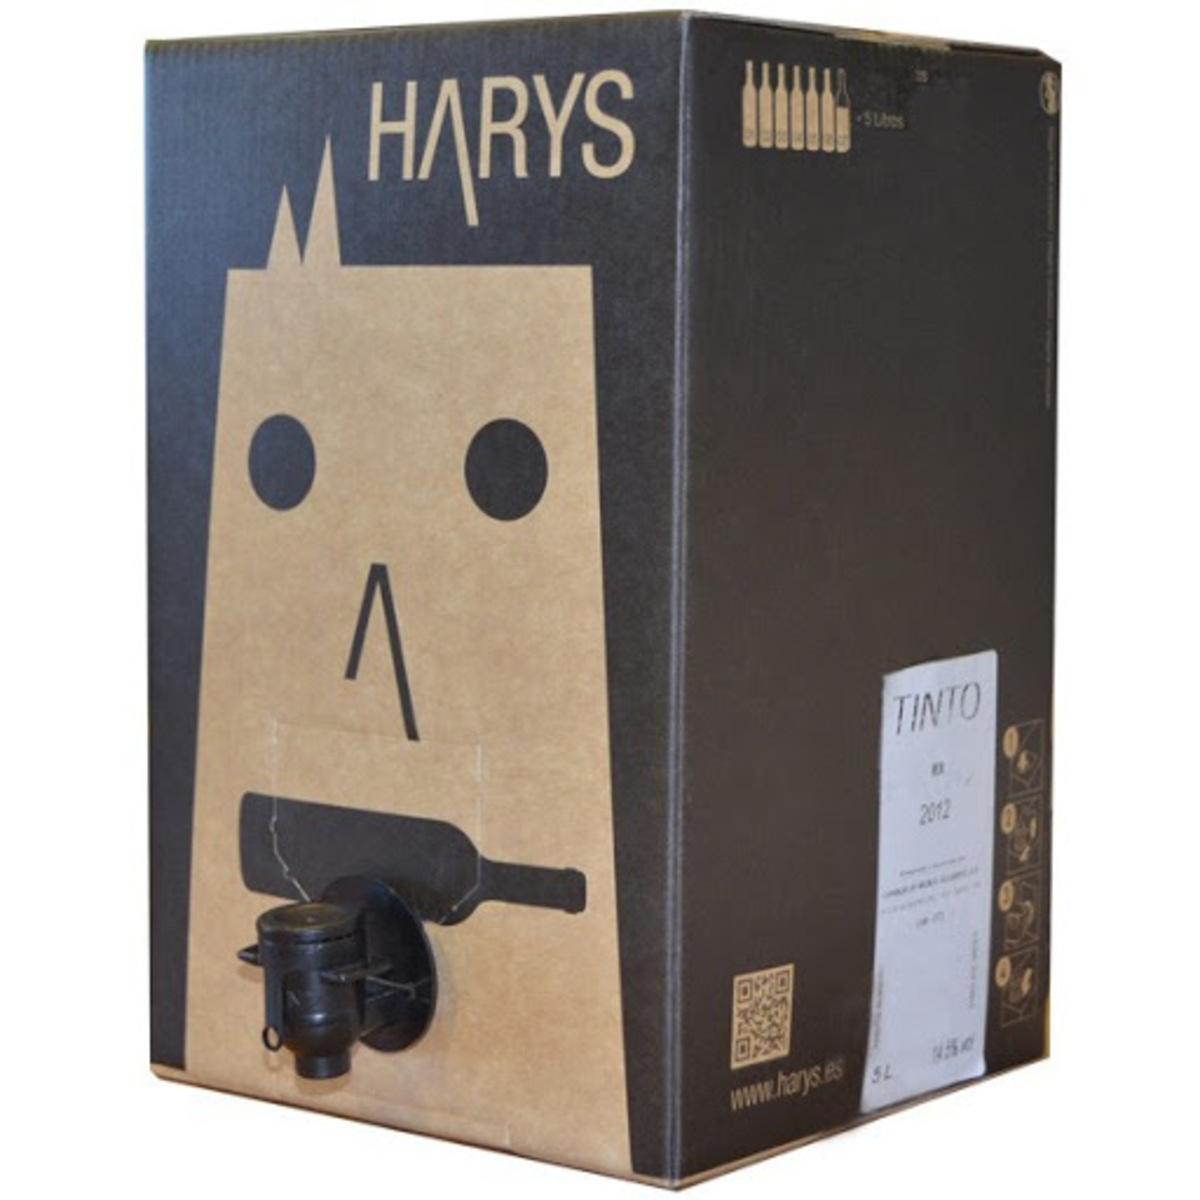 Harys Mon Bag-in-box 5L